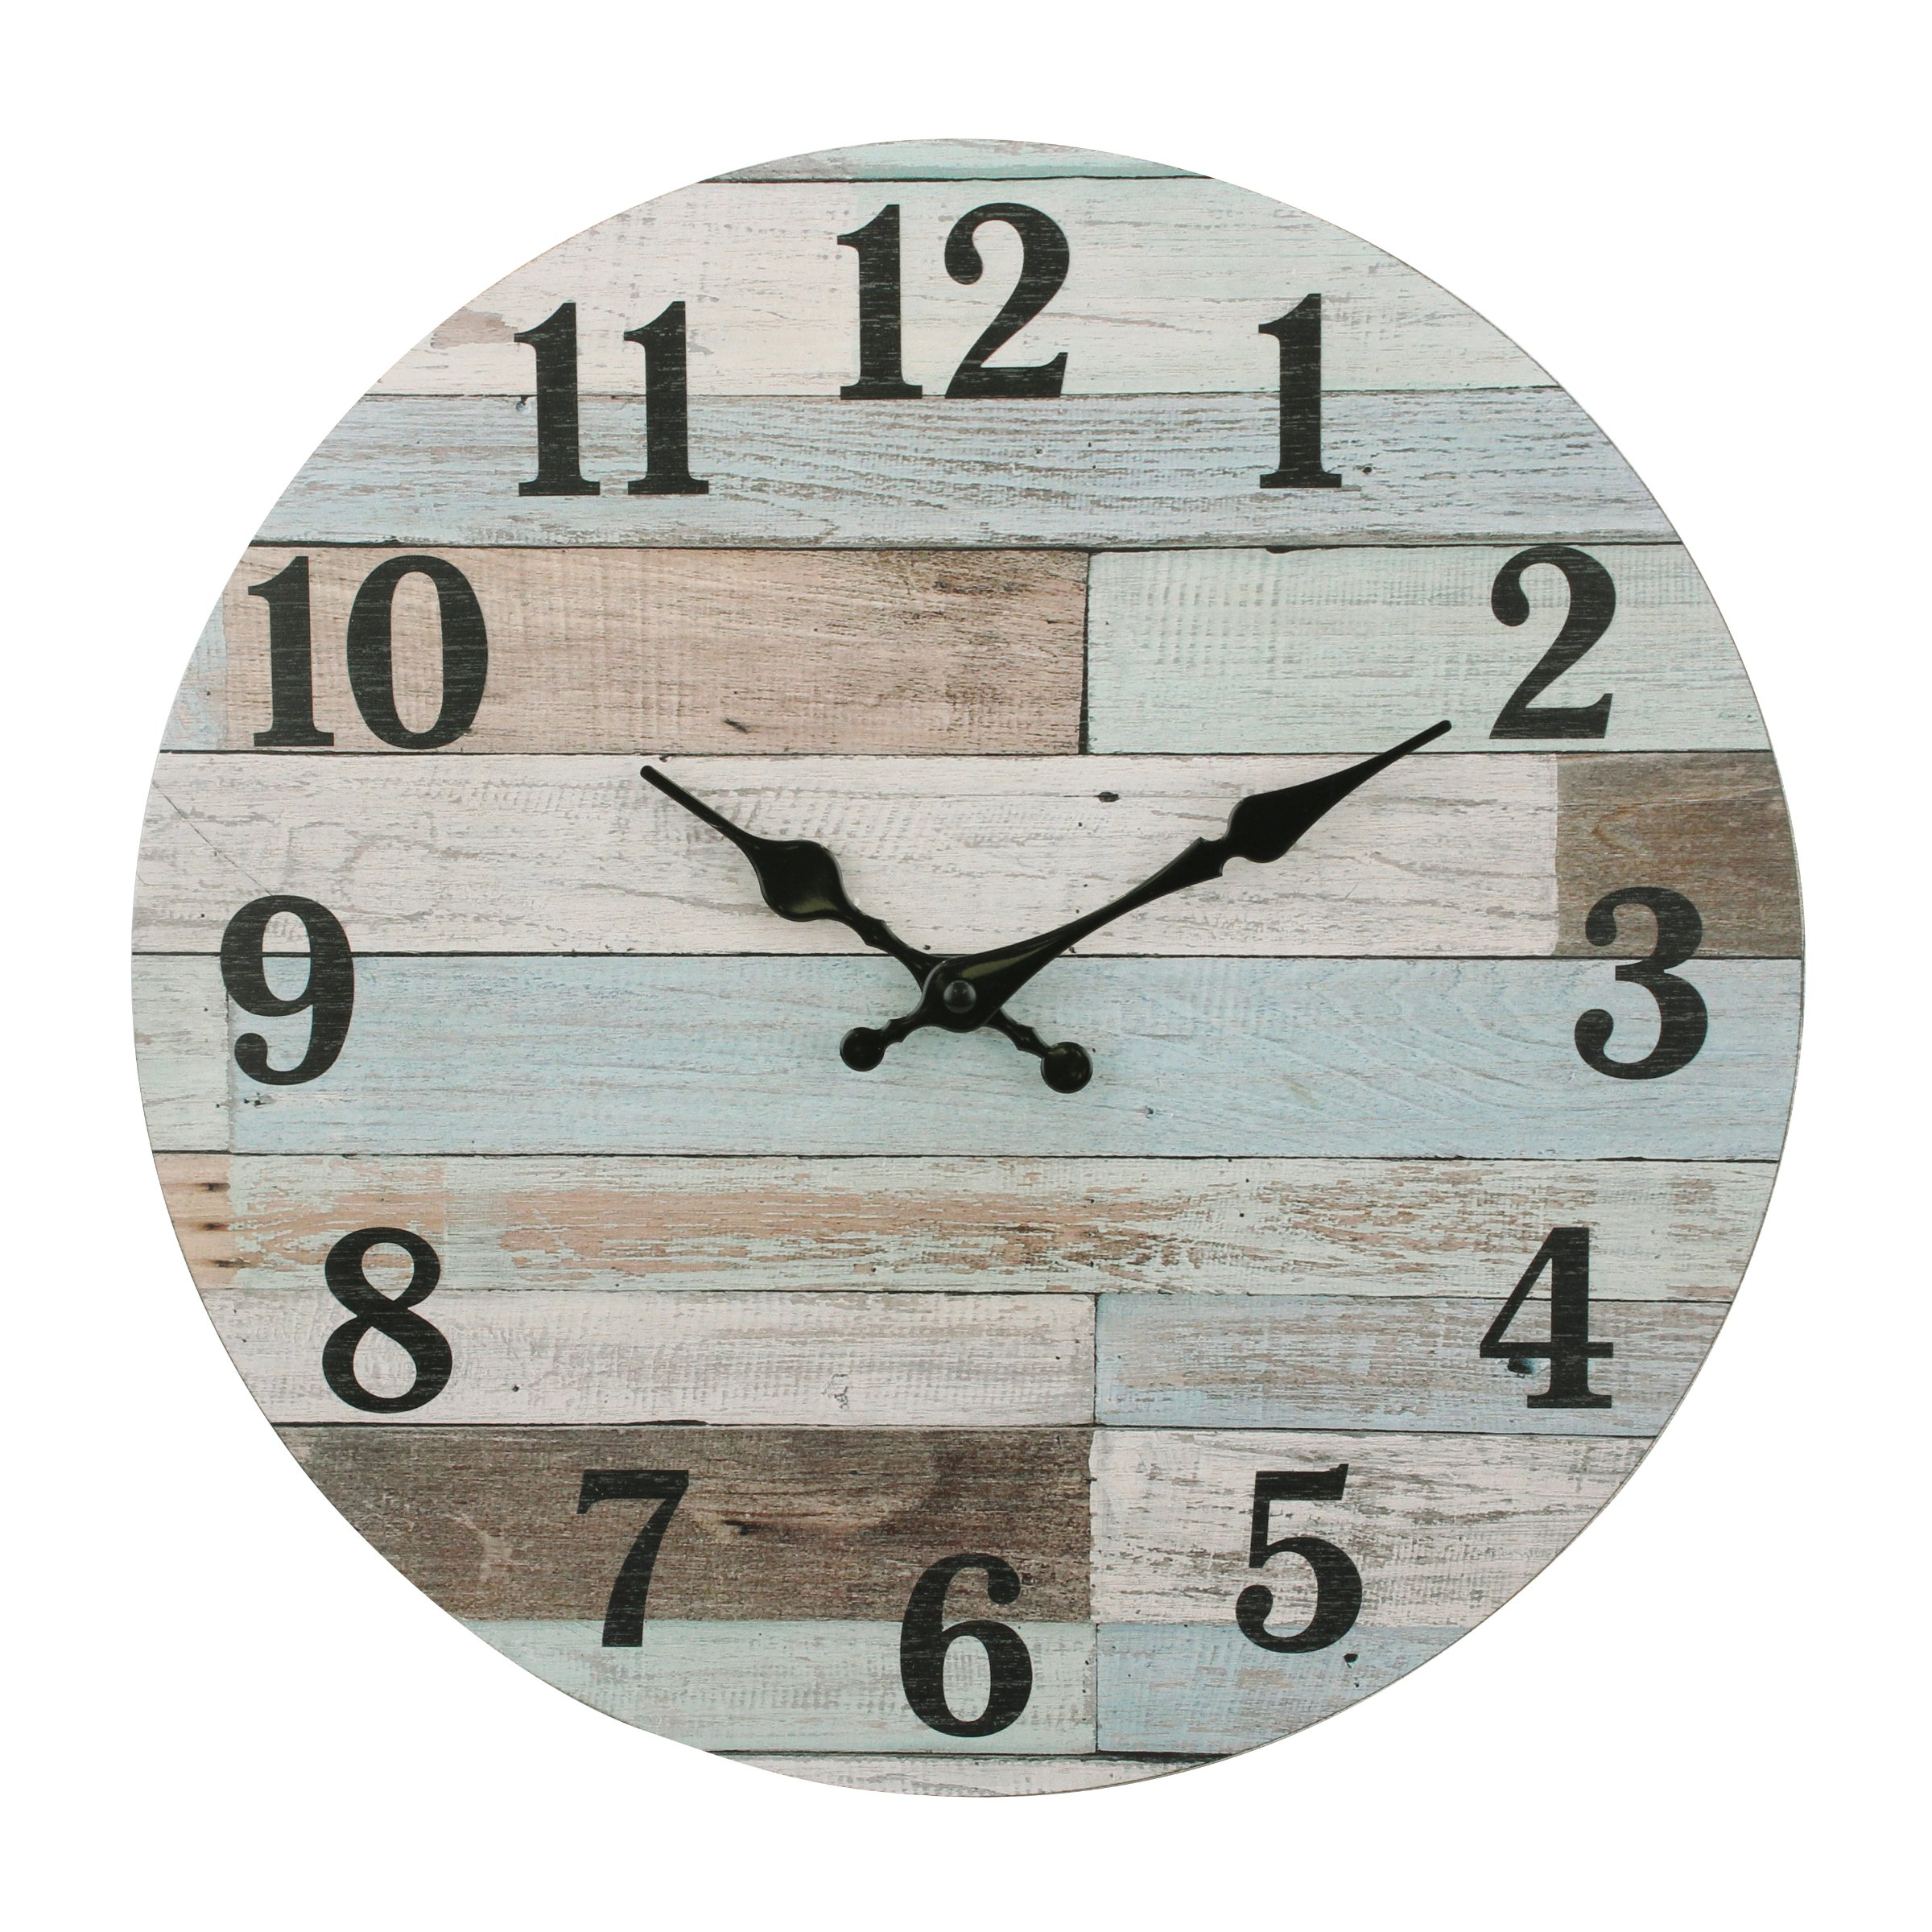 Stonebriar Vintage Coastal Worn Blue 14 Inch Round Hanging Wall Clock, Battery Operated, Rustic Wall Decor for the Living Room, Kitchen, Bedroom, and Patio by Stonebriar